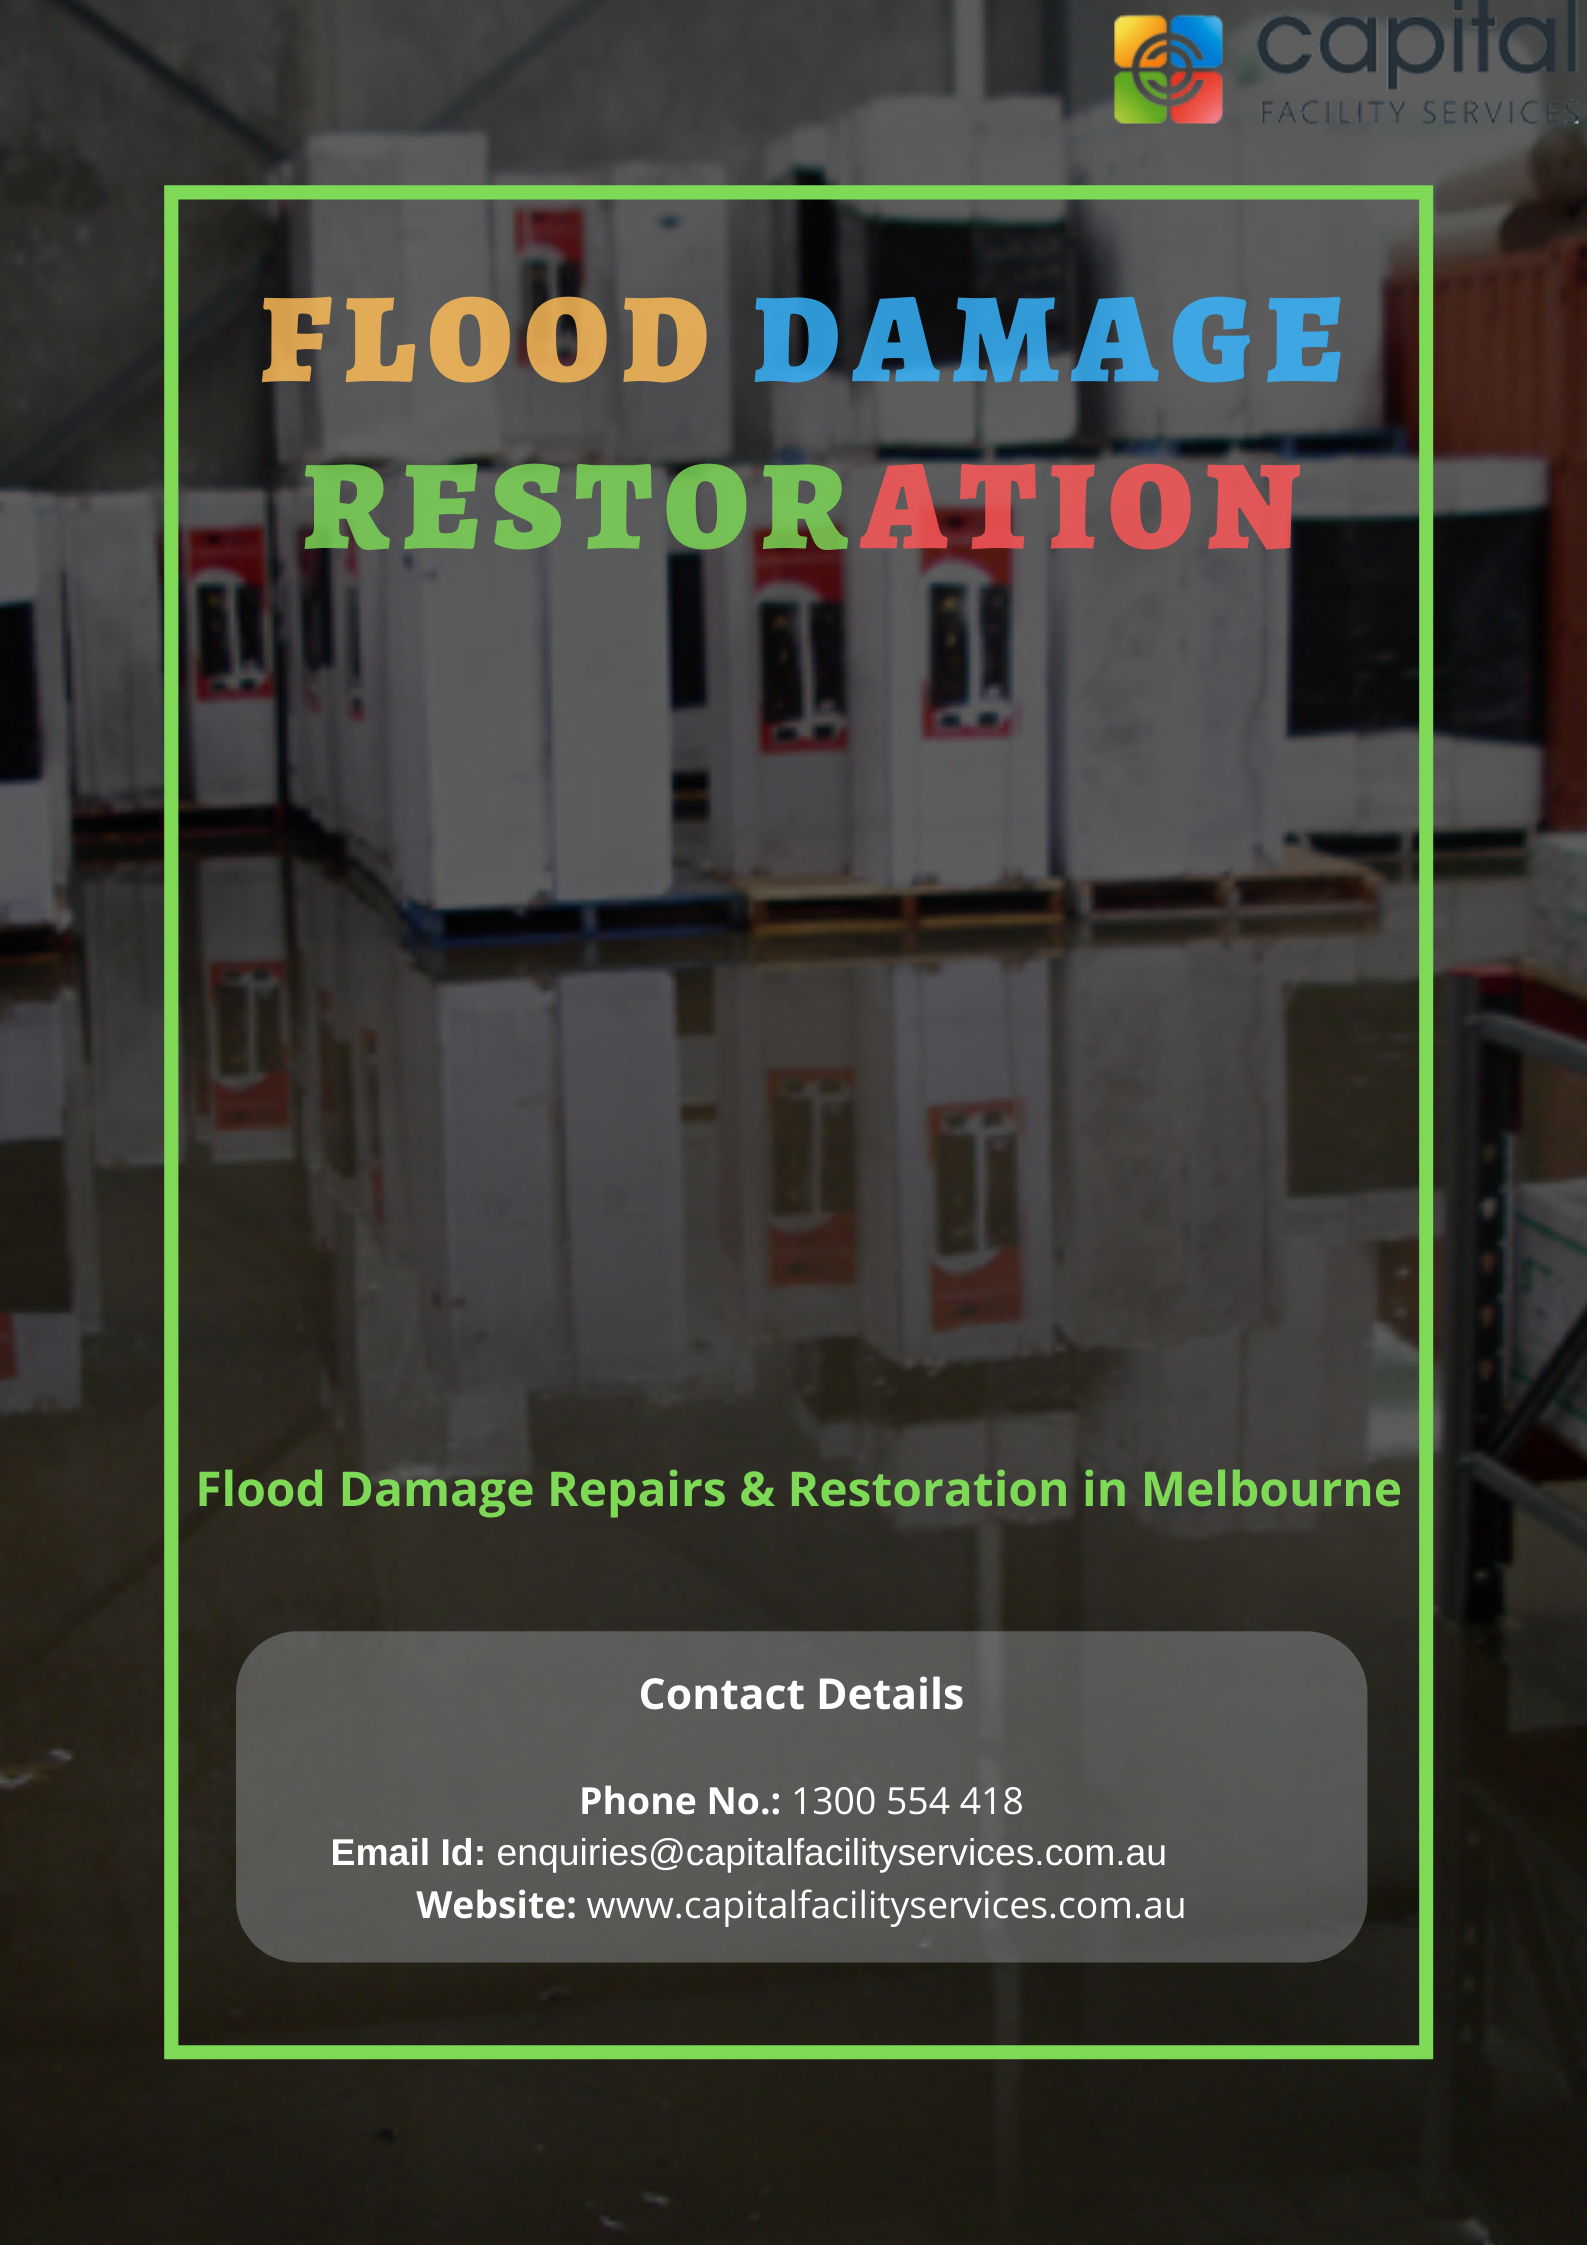 Melbourne Flood Damage Restoration Call Us 24 7 On 1300 554 418